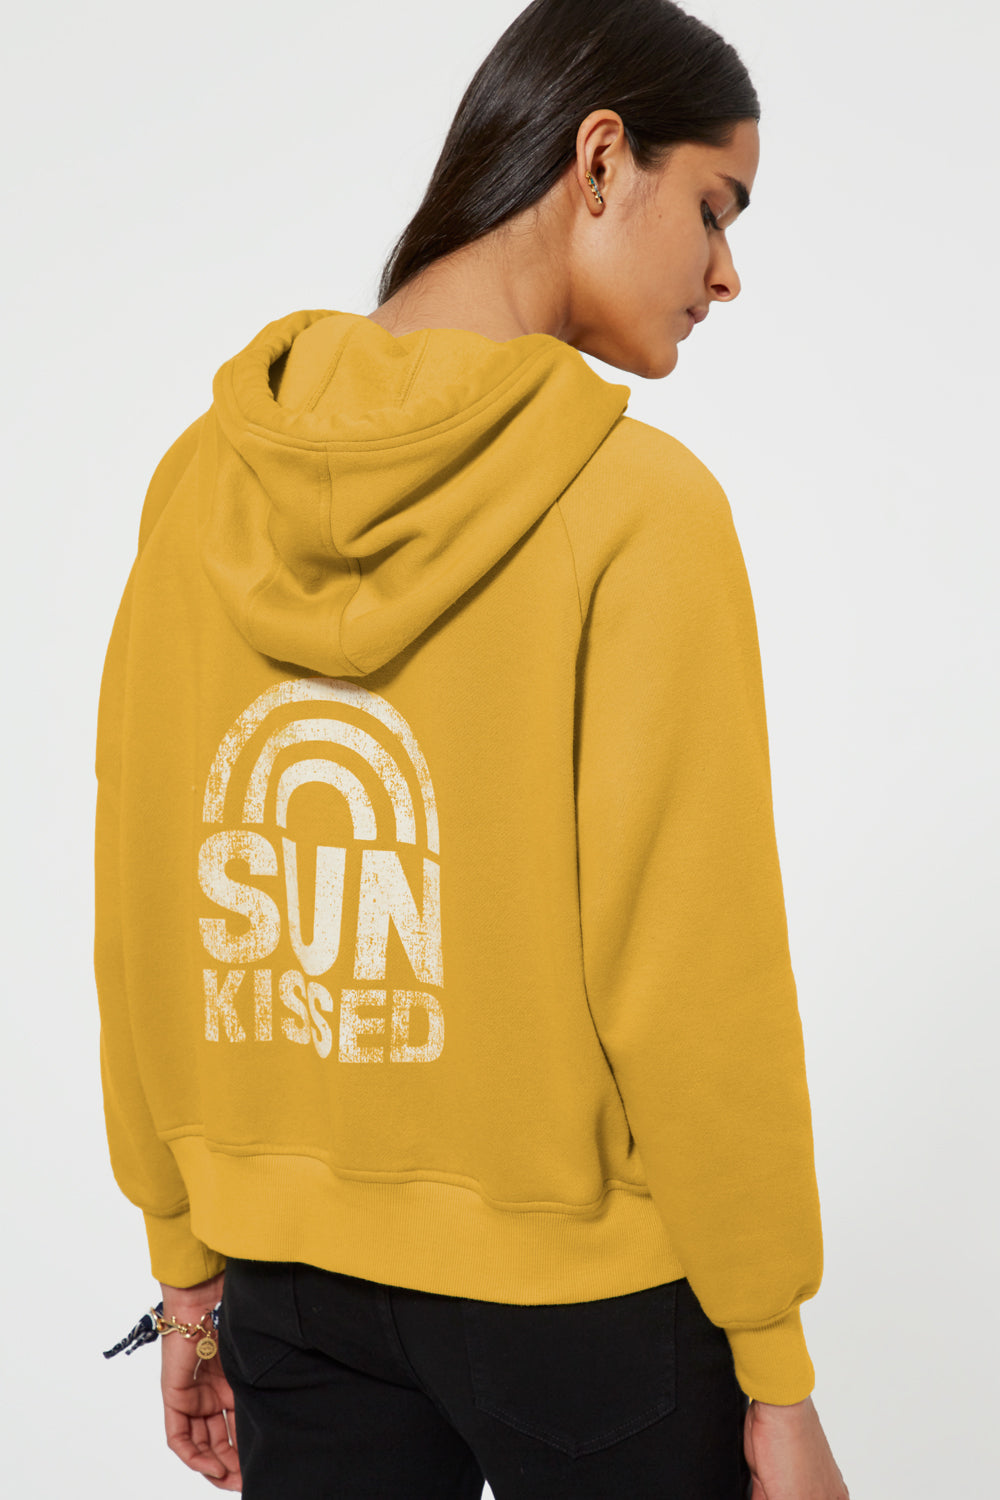 Sunkissed帽衫